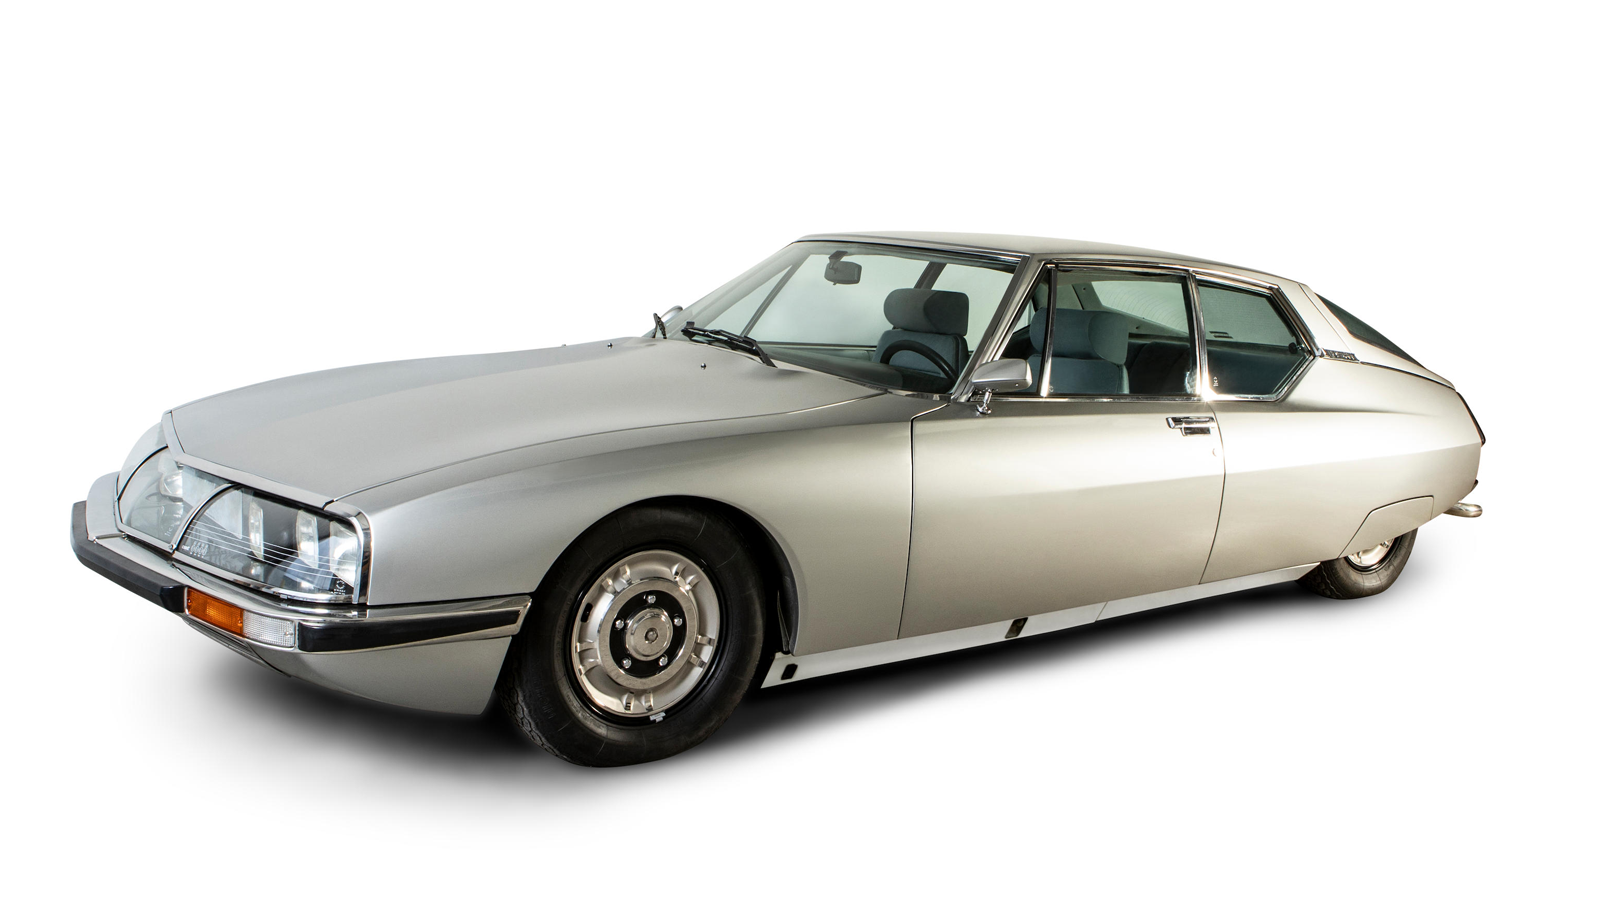 'Missing' Aston Martin leads Bonhams' Bond Street sale